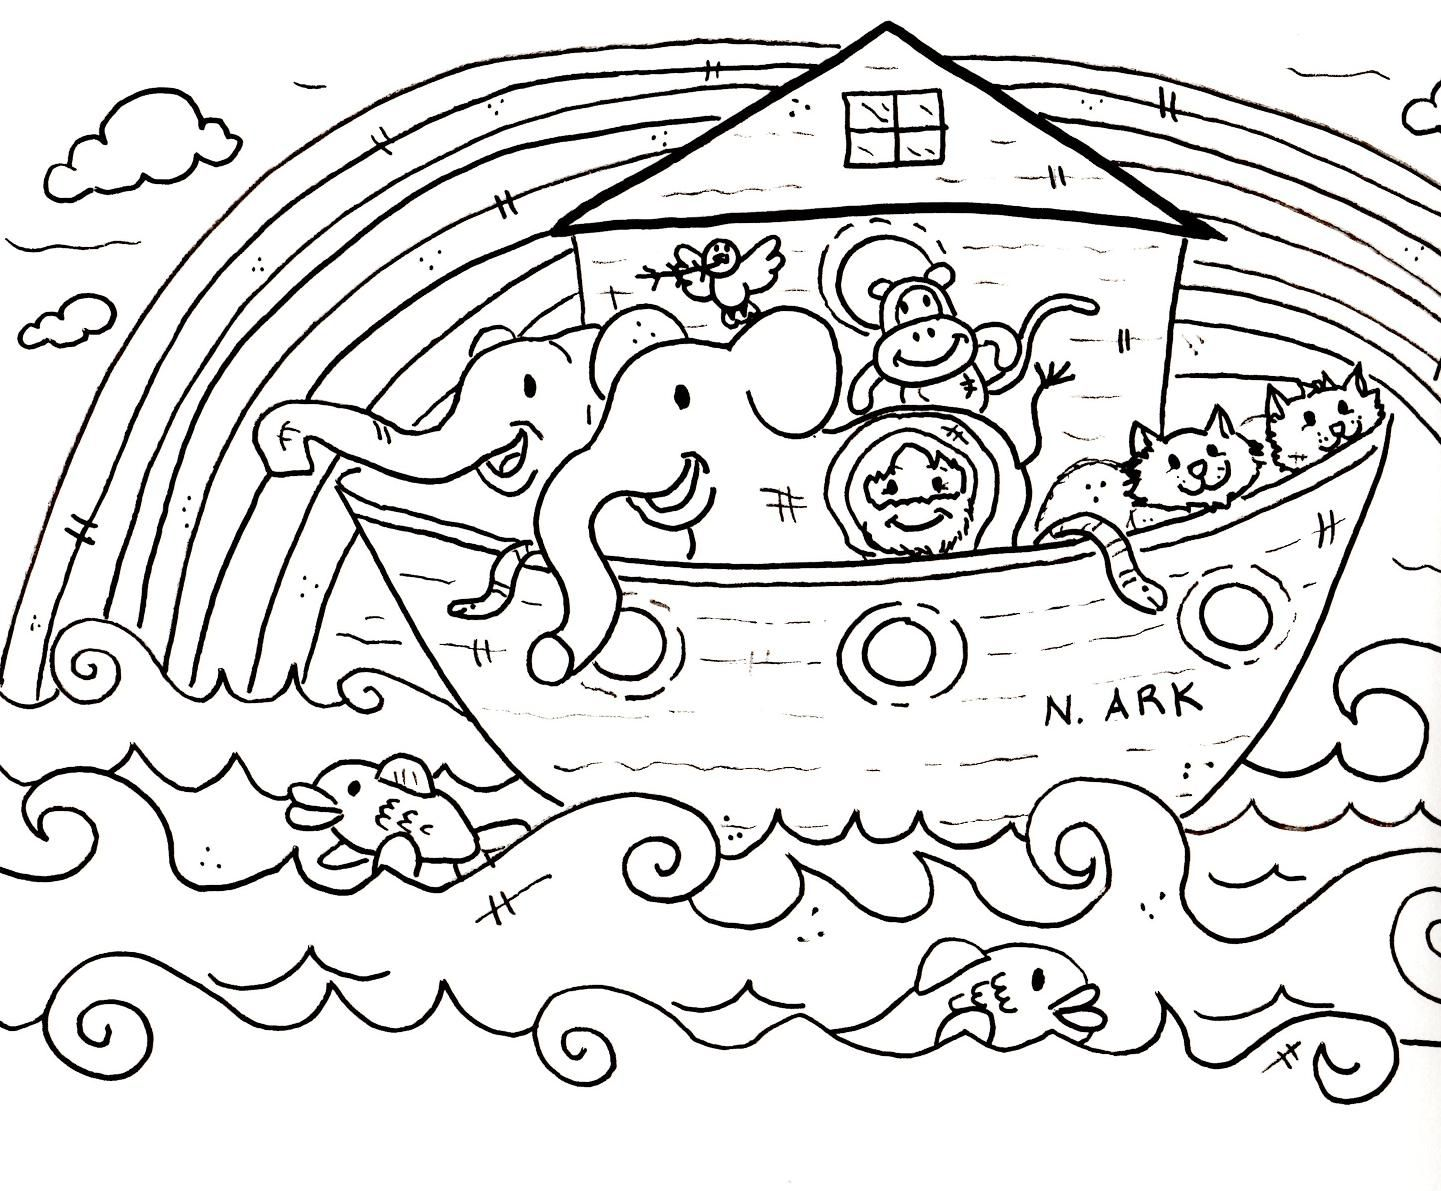 Online childrens coloring pages - Children Coloring Pages For Church Sunday School Coloring Pages Coloring Pages